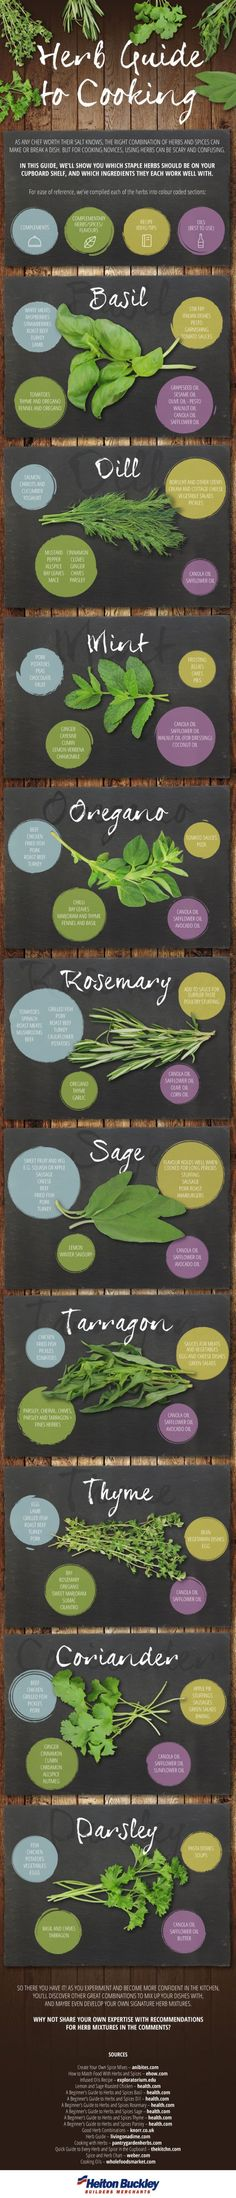 This Infographic Tells you How to Best Use Herbs in Your Cooking #Infographic #Cooking #Herbs #Milan #Expo2015 #WorldsFair